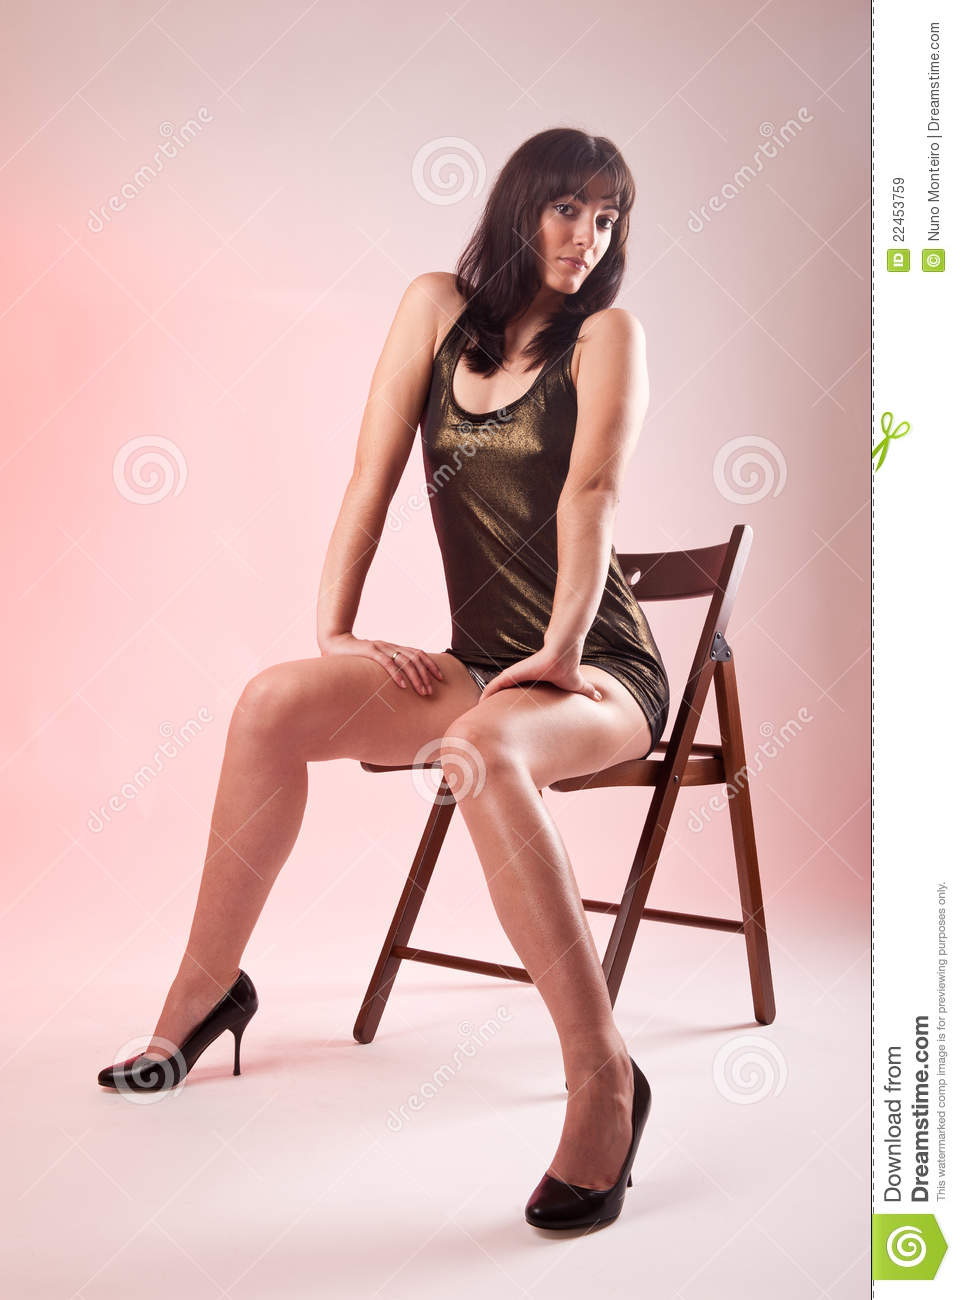 modern wood chair plans french brasserie chairs woman seated on wooden royalty free stock images - image: 22453759